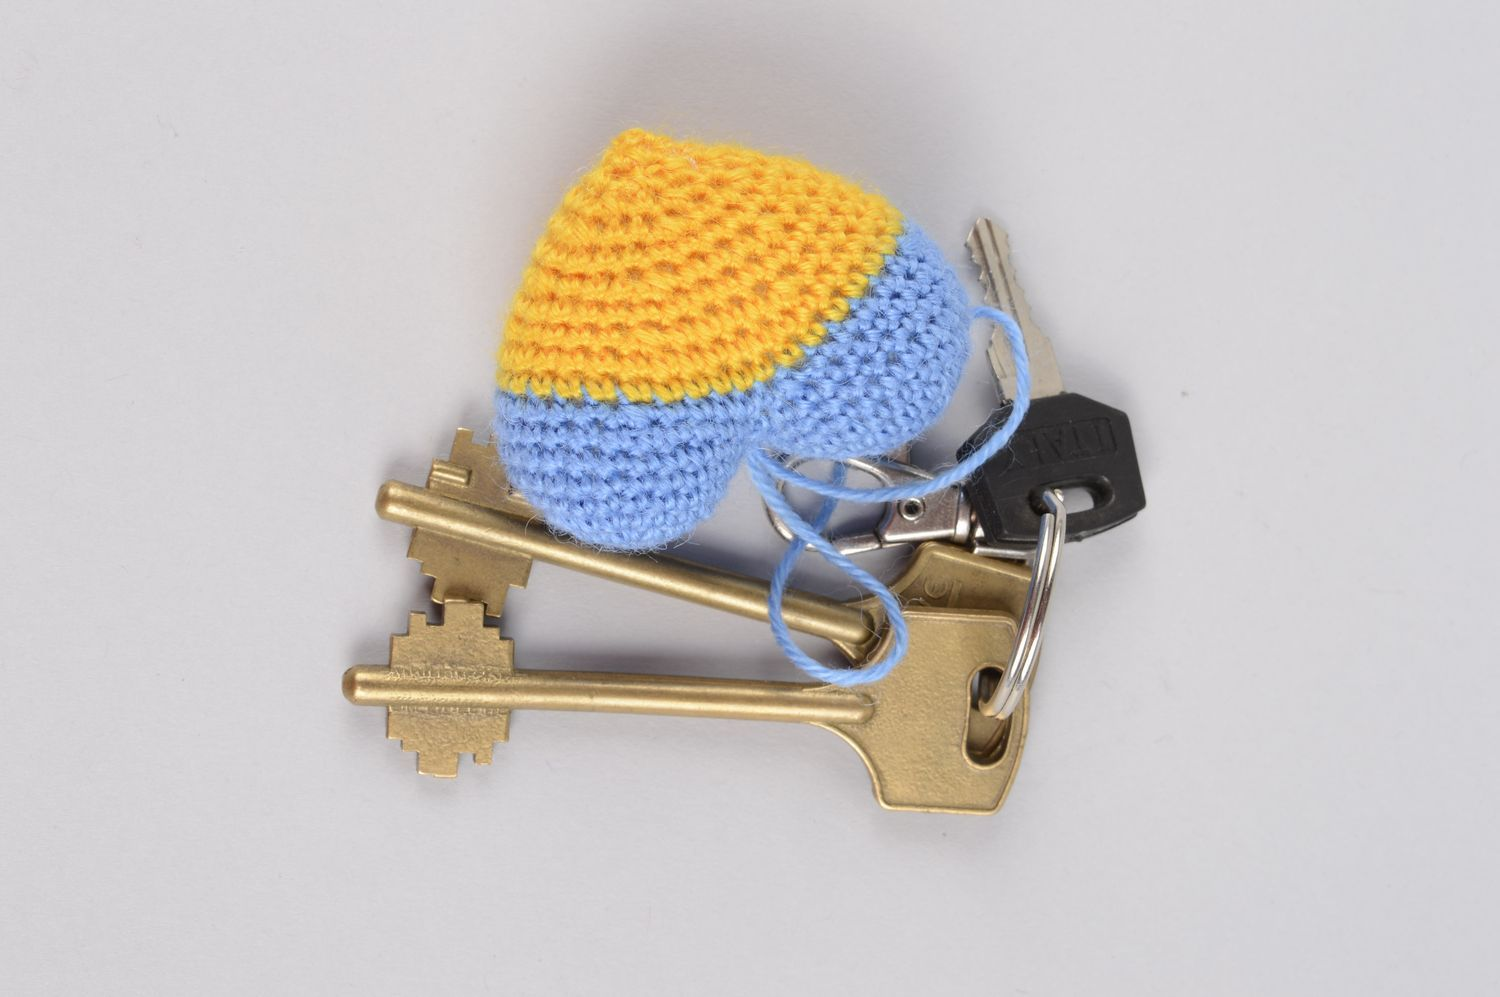 Beautiful handmade soft keychain crochet ideas fashion accessories gifts  for kid